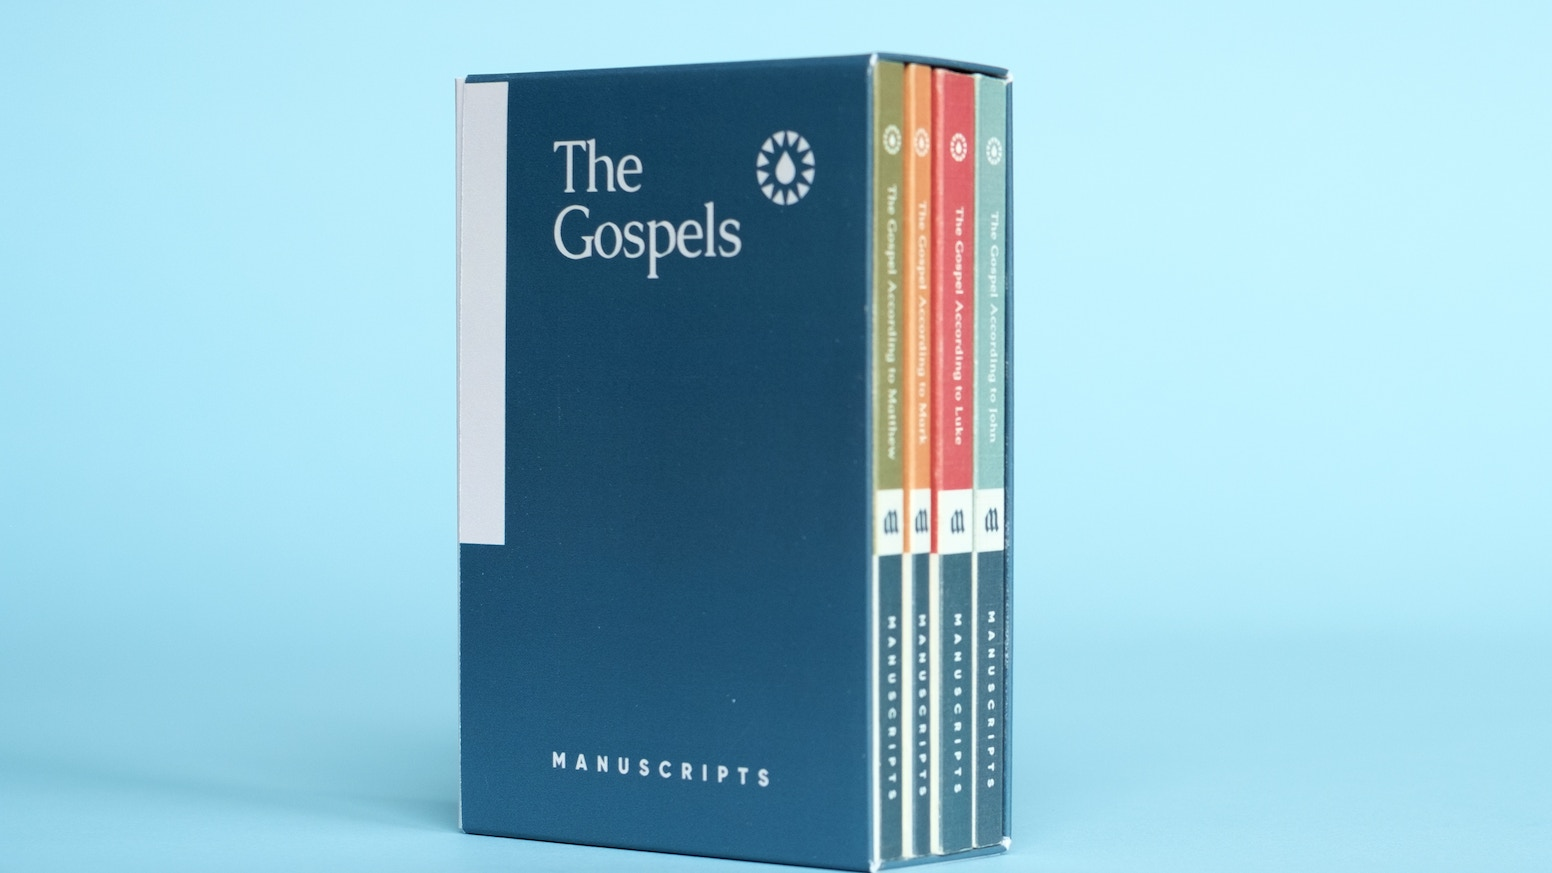 Beautiful, easy-to-read, and approachable. The four Gospels published in individual volumes for easy reading.